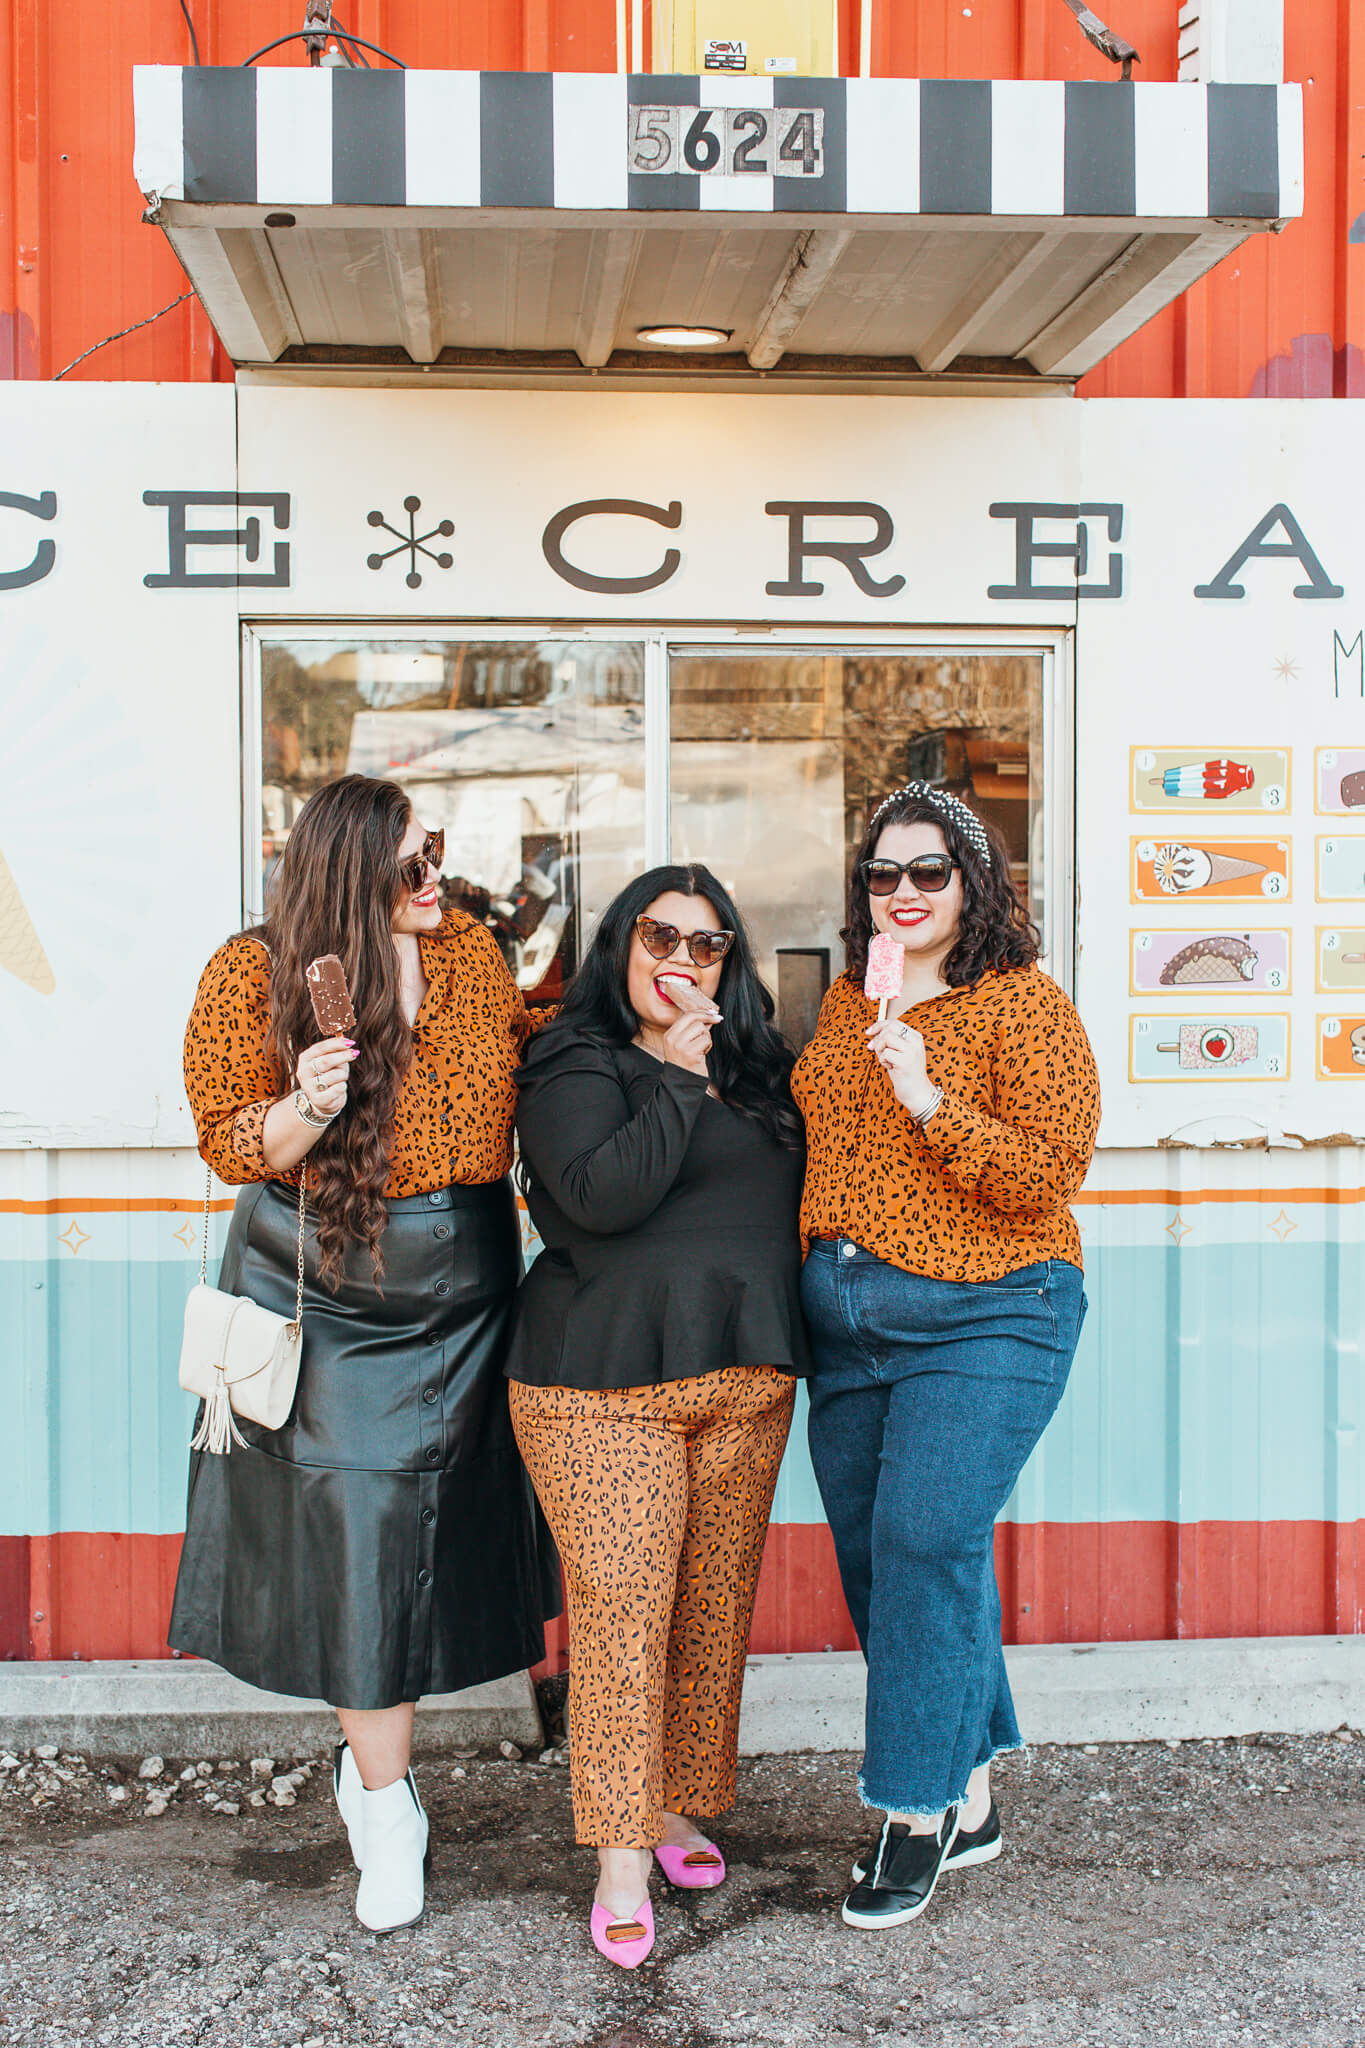 You scream, I scream, we all scream for ice cream - cheetah print plus size outfit